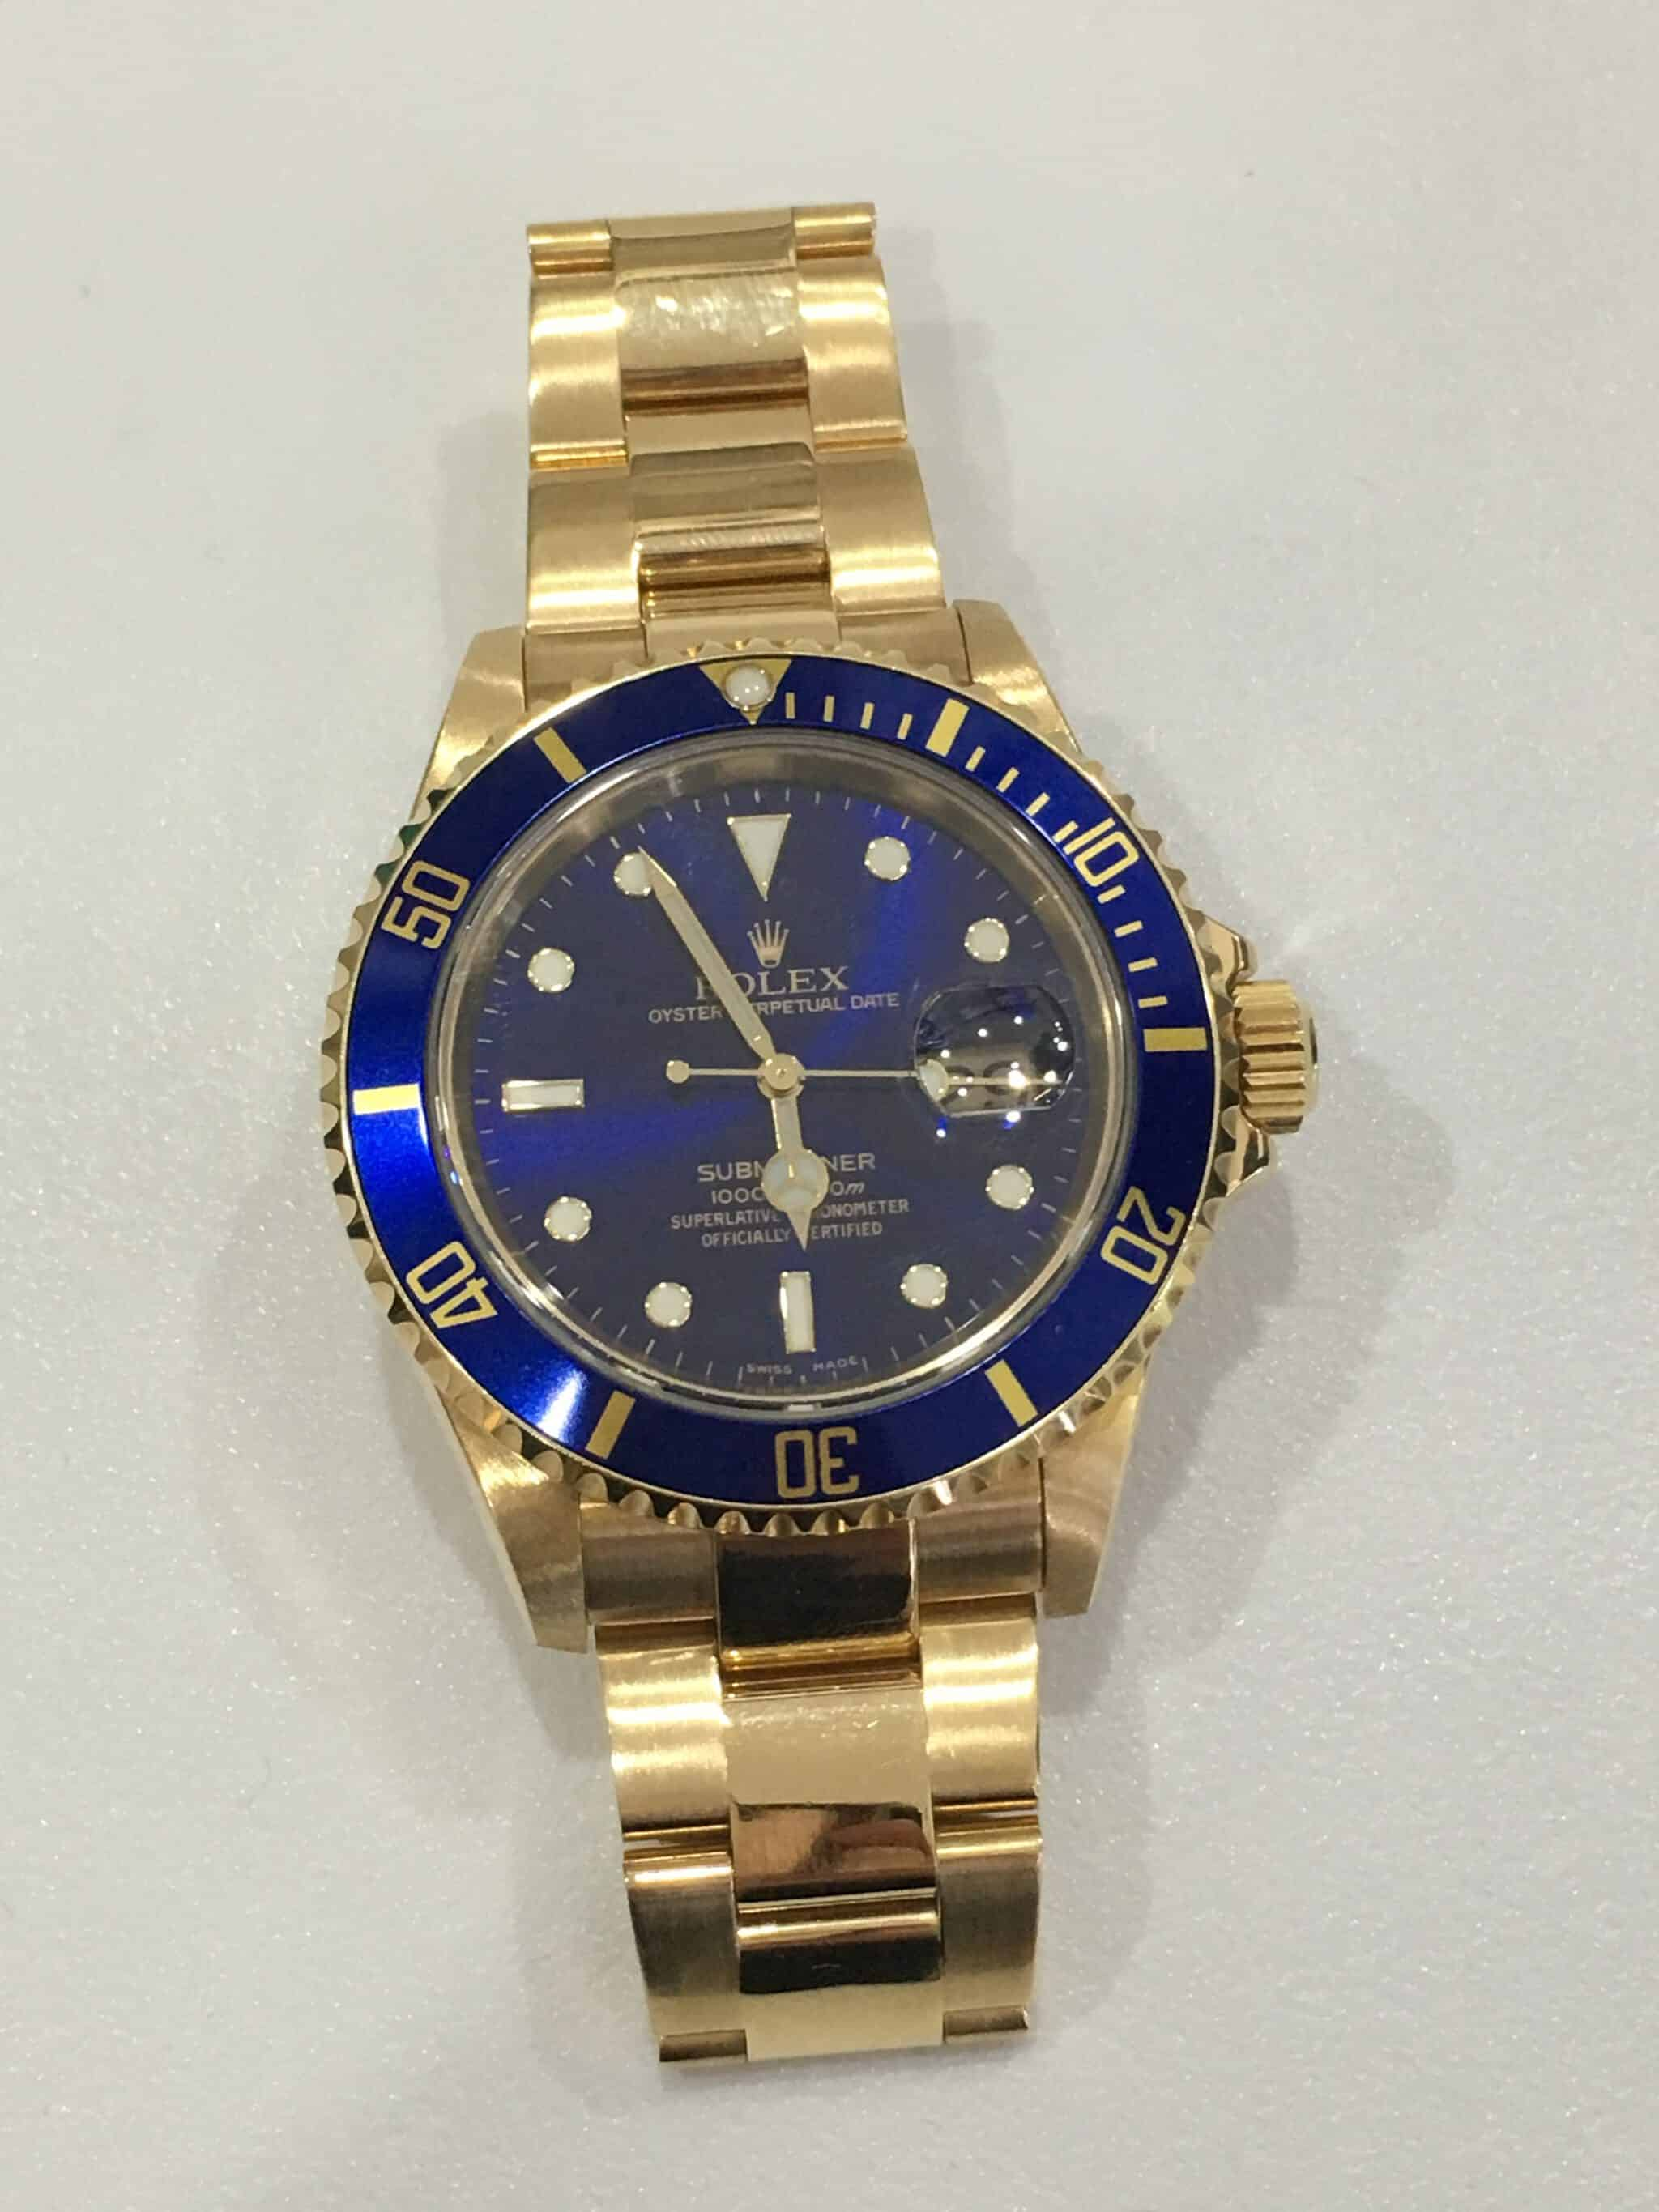 comfortable submariner modestly used the it deepsea properly watches rolex unwearable if yet review deep like sea more as sized not is still adjusted and be certainly can